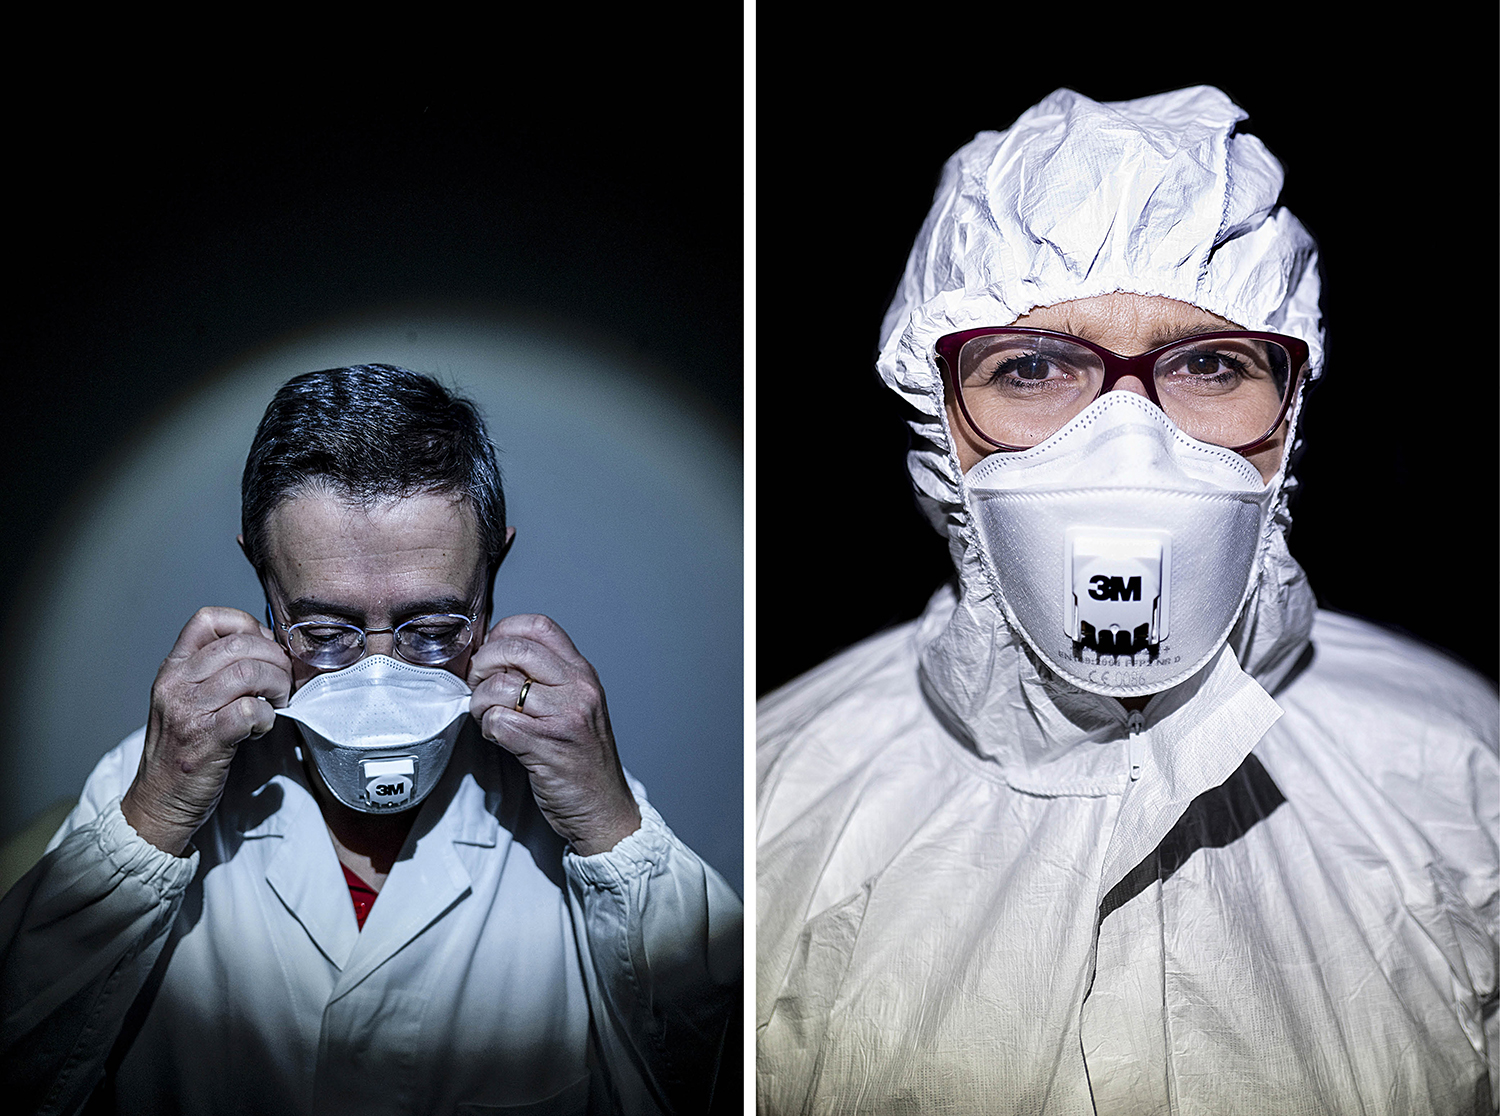 Left: Giustino Parruti, 58, the director of the infectious disease unit at Santo Spirito Hospital in Pescara and a member of the region's task force on the coronavirus emergency. Right: Antonella Frattari, 47, the head of intensive care at Santo Spirito Hospital.